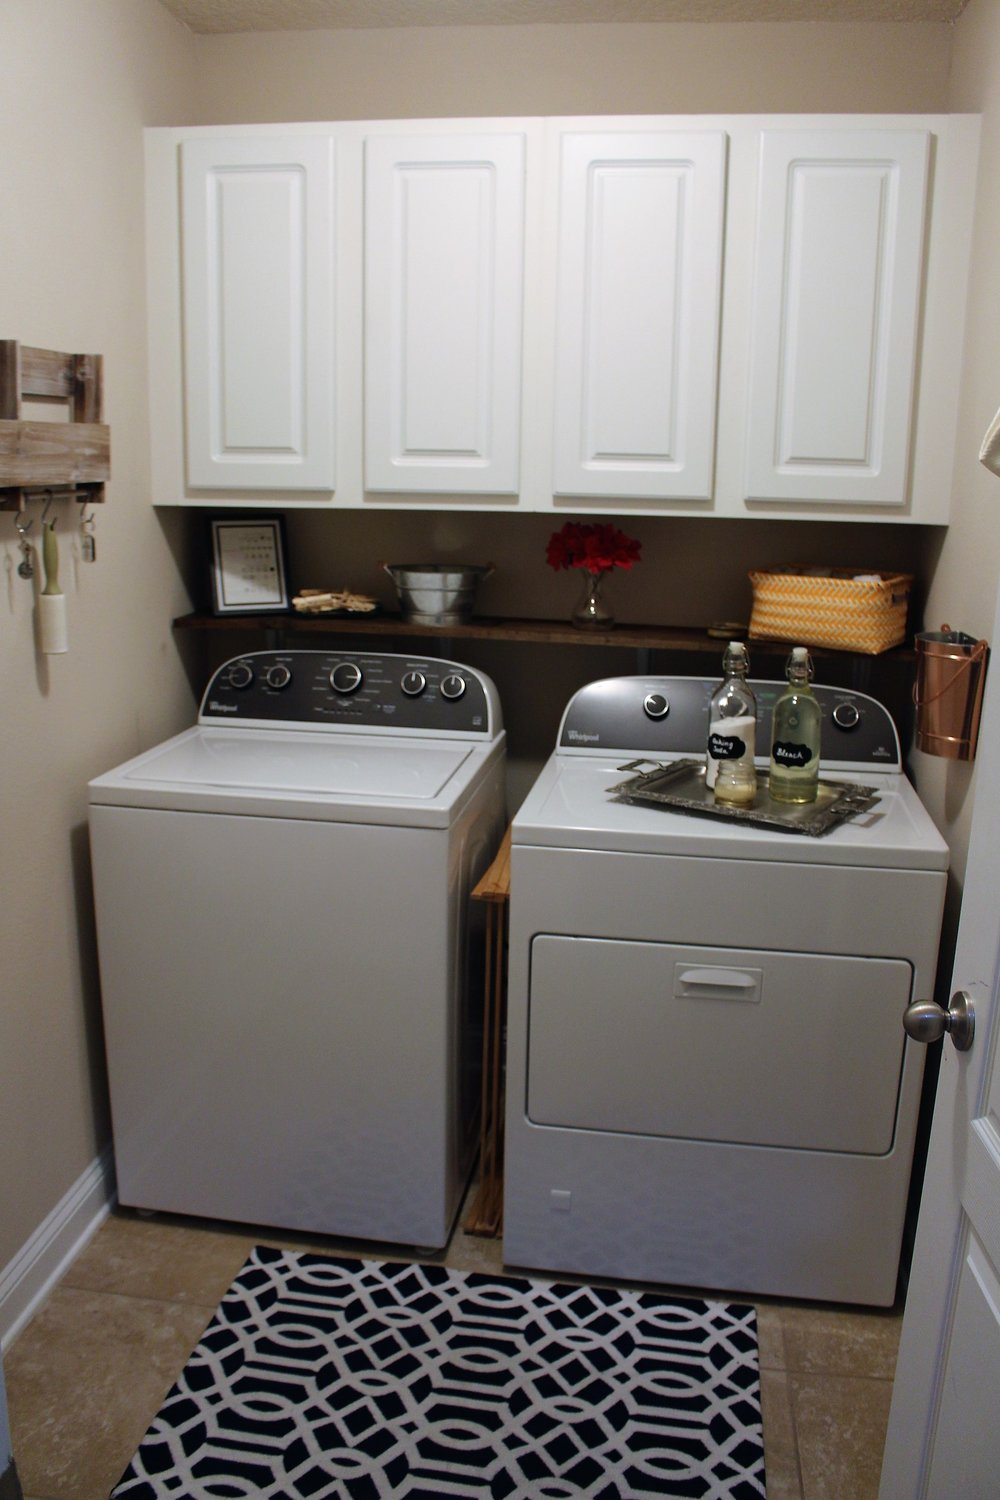 Cleaning your Washer and Dryer without harsh chemicals